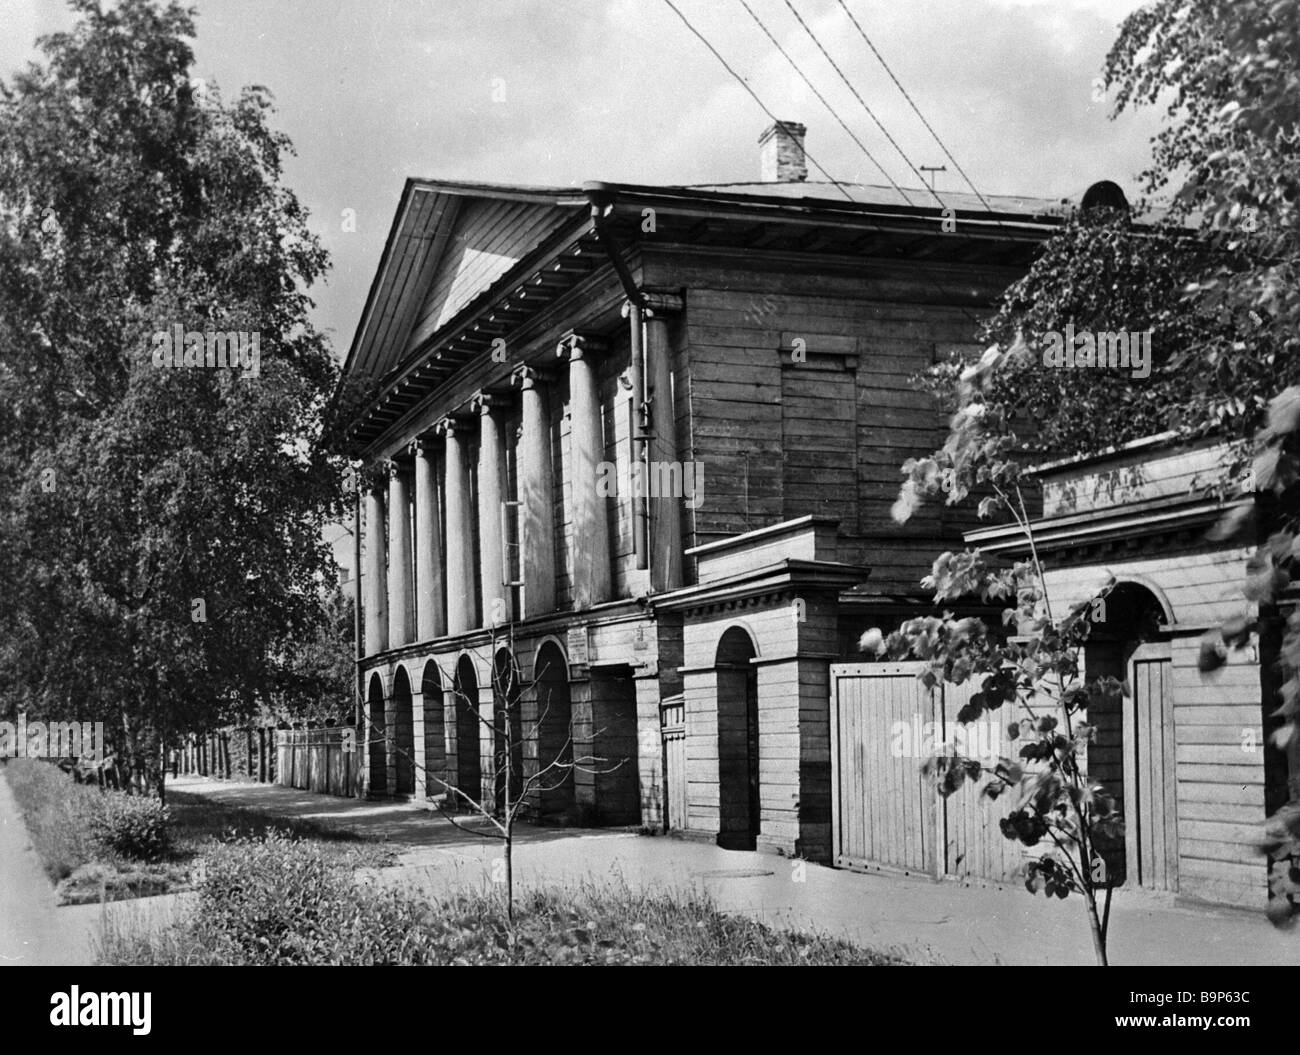 A classicism style wooden house built by Levashov in 1829 - Stock Image